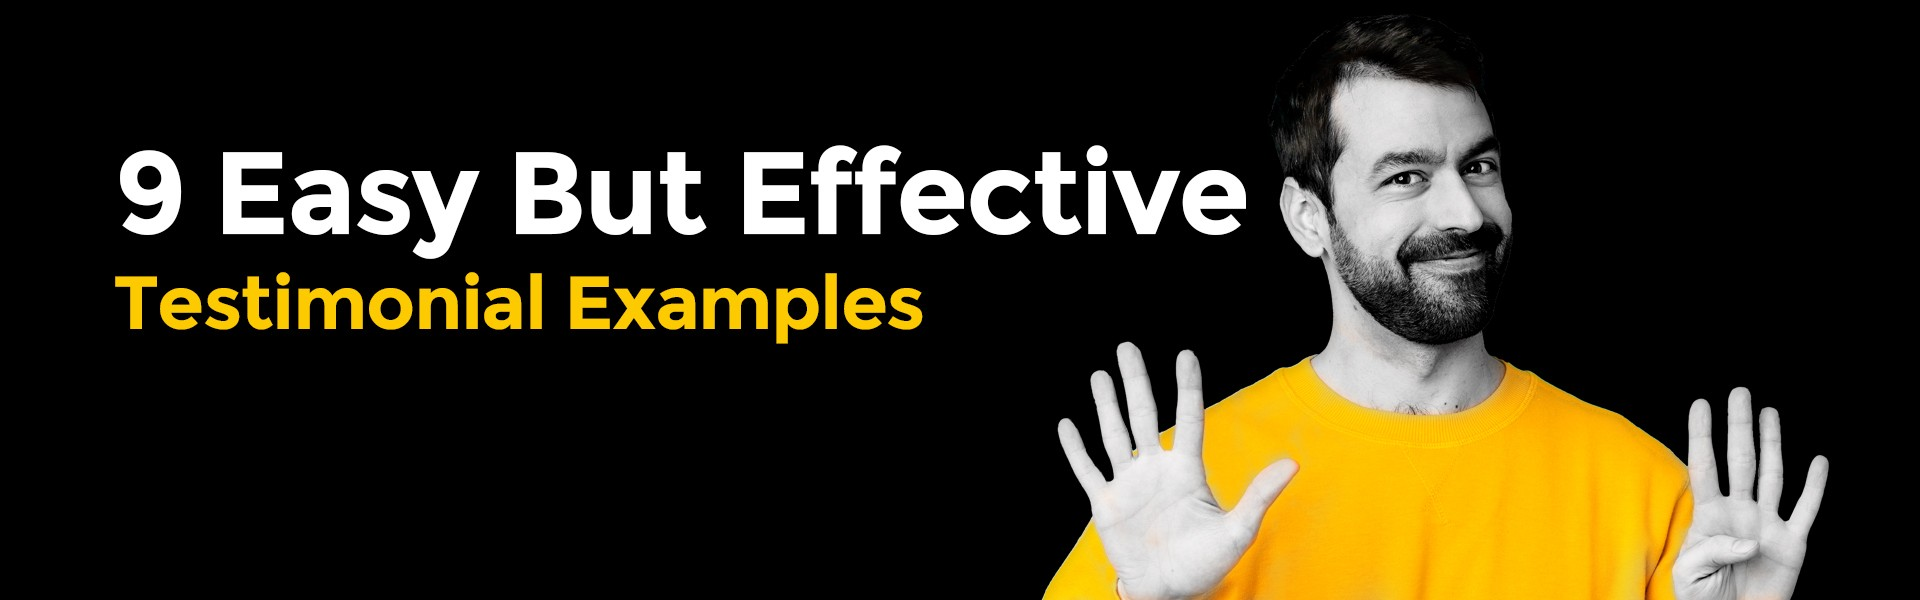 9-Easy-But-Effective-Testimonial-Examples-Which-Can-Help-Increase-Conversions-1